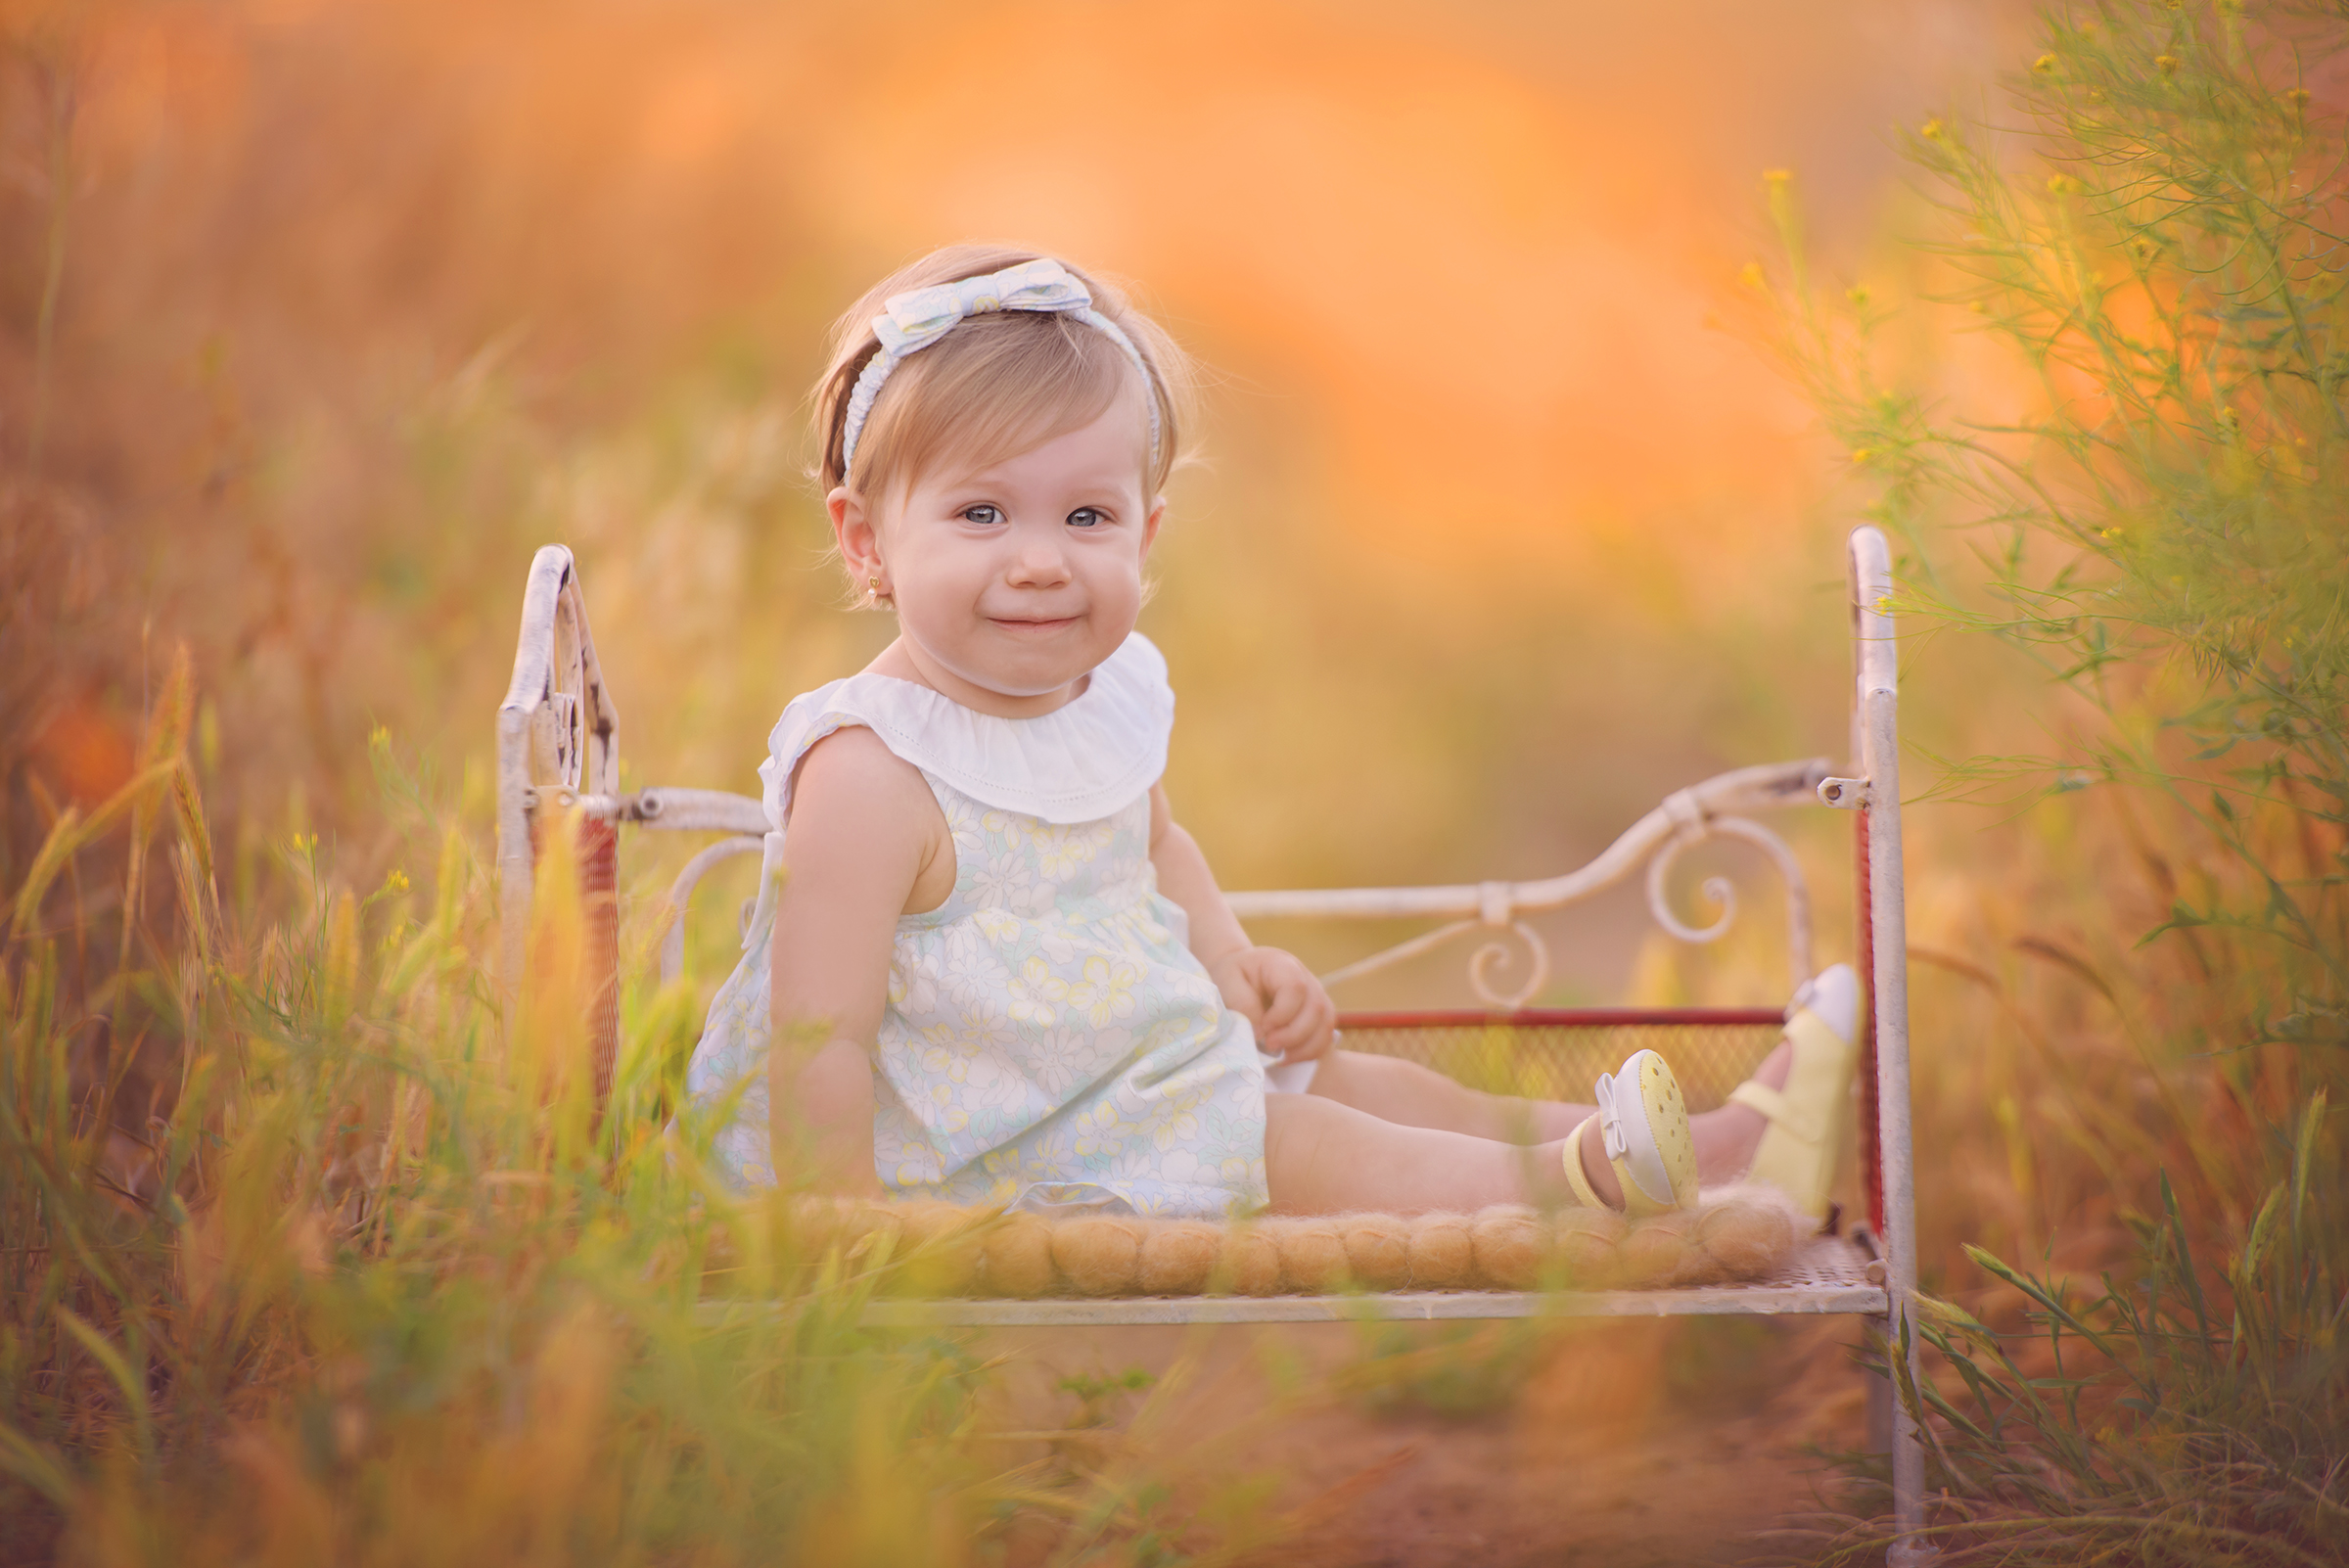 Baby girl during San Diego portrait photo session in Santee, CA